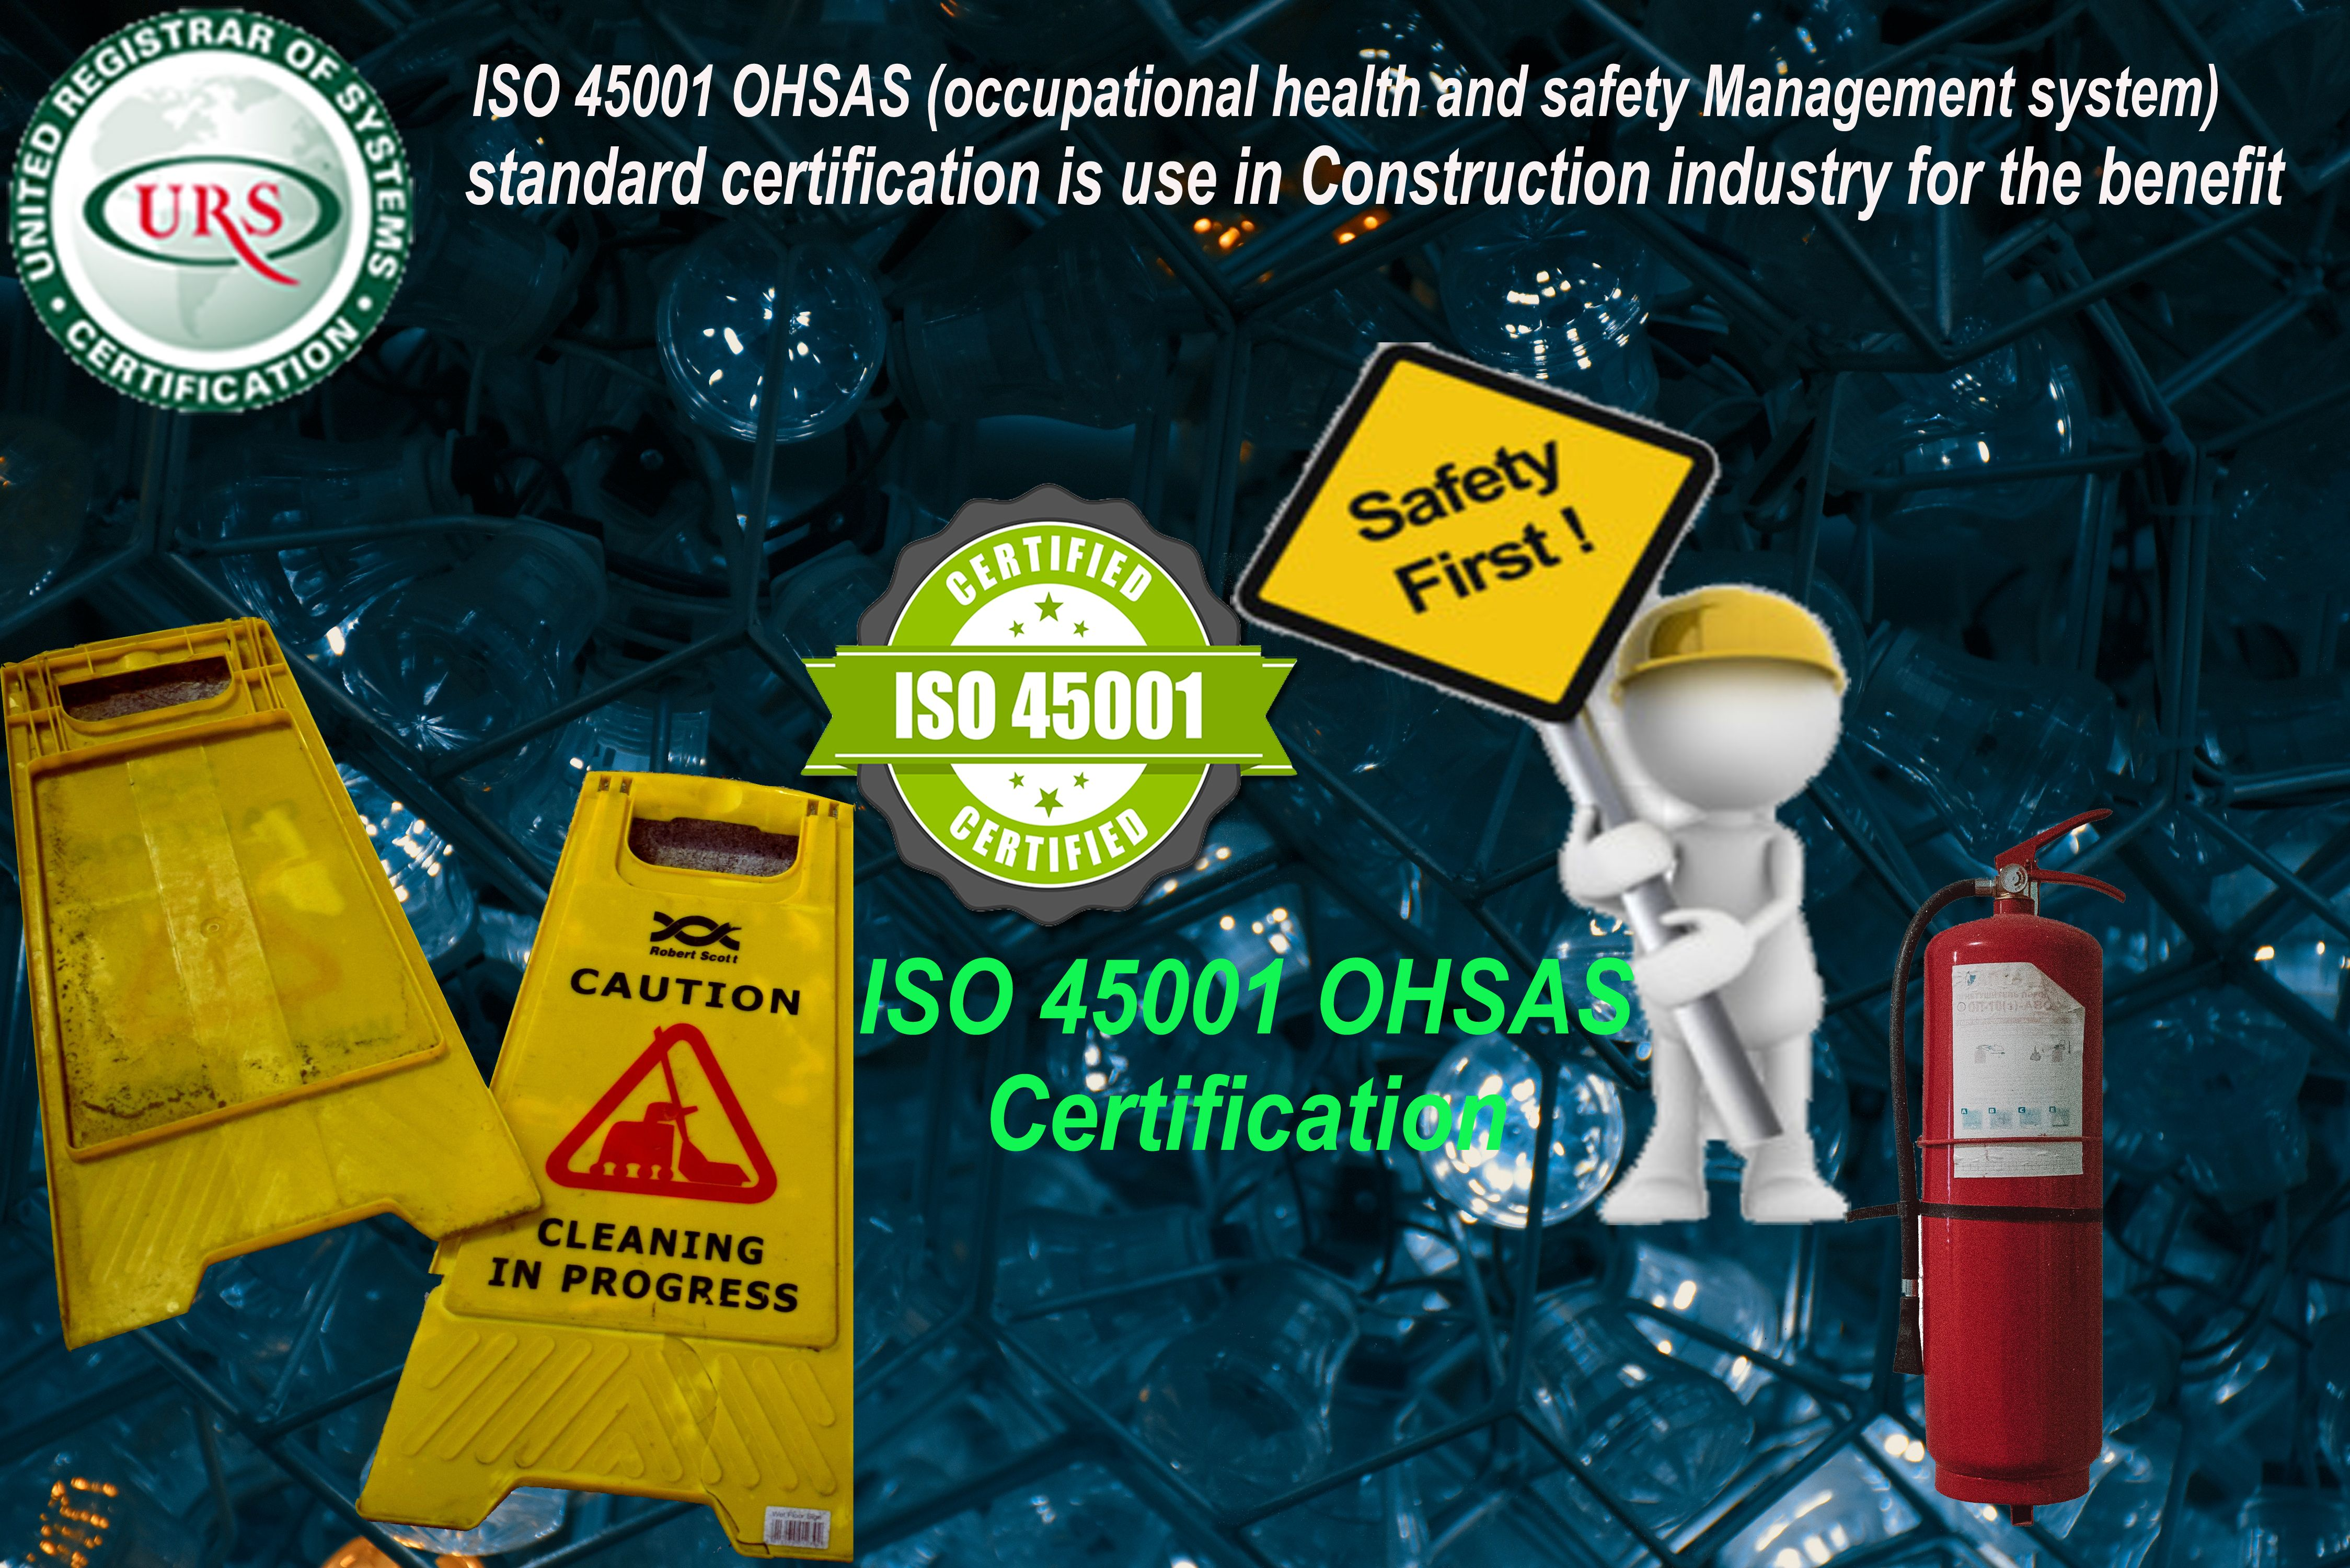 ISO 45001 OHSAS (occupational health and safety Management